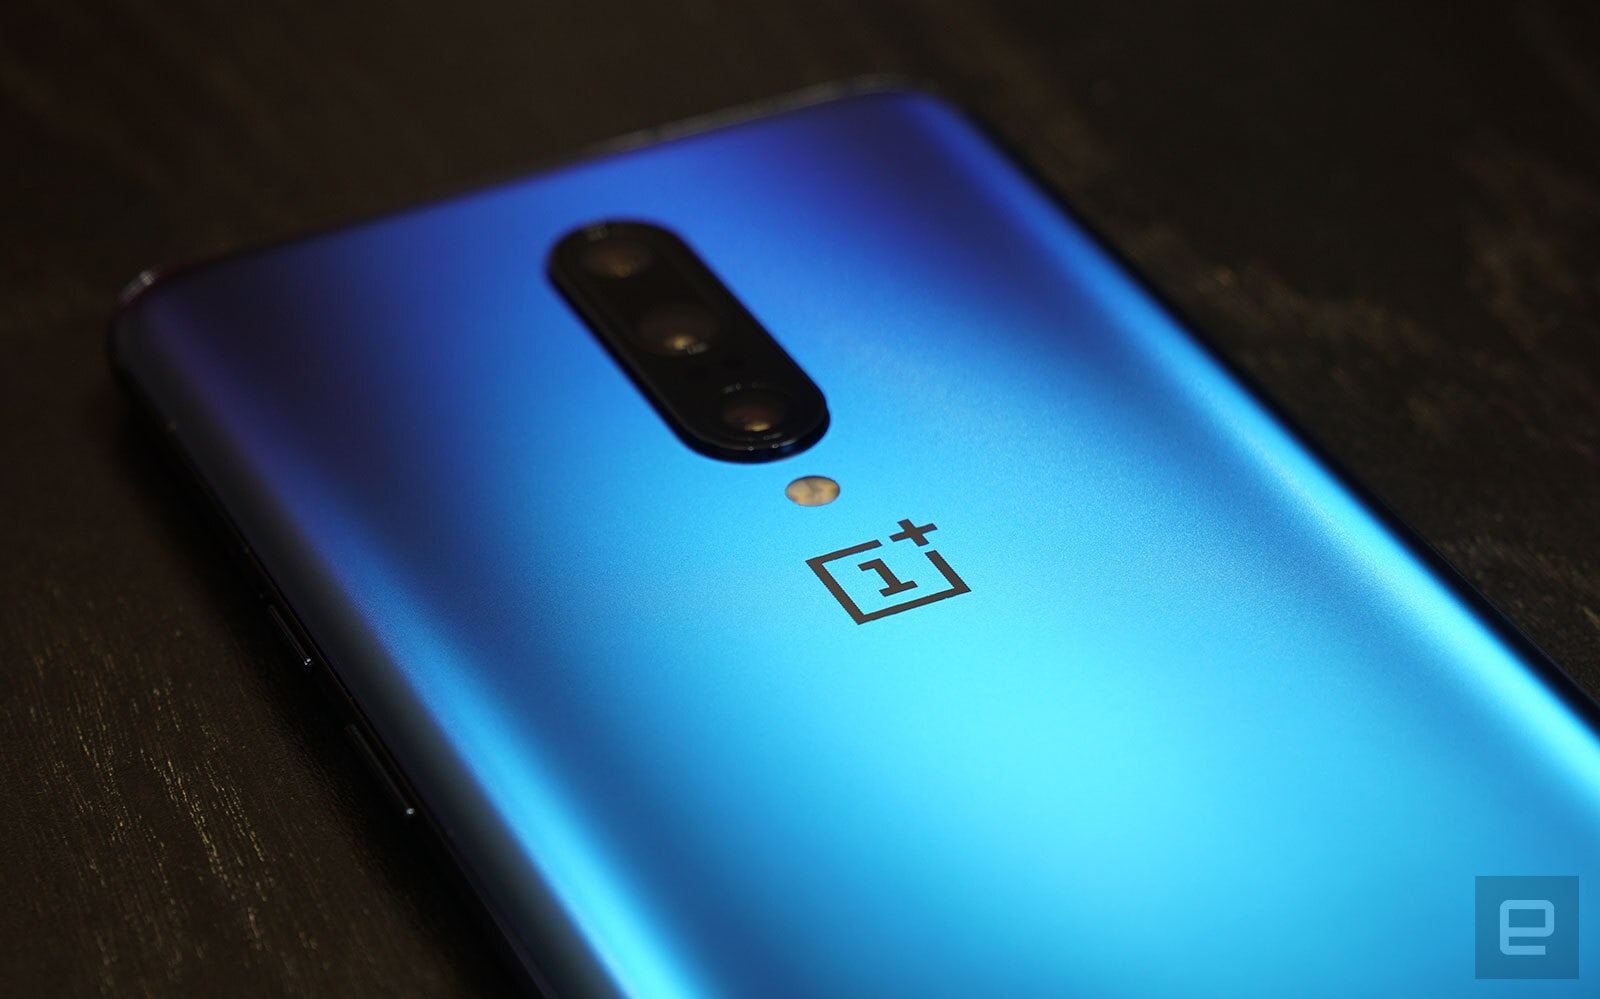 Readers weigh in on what makes the OnePlus 7 Pro a worthy contender